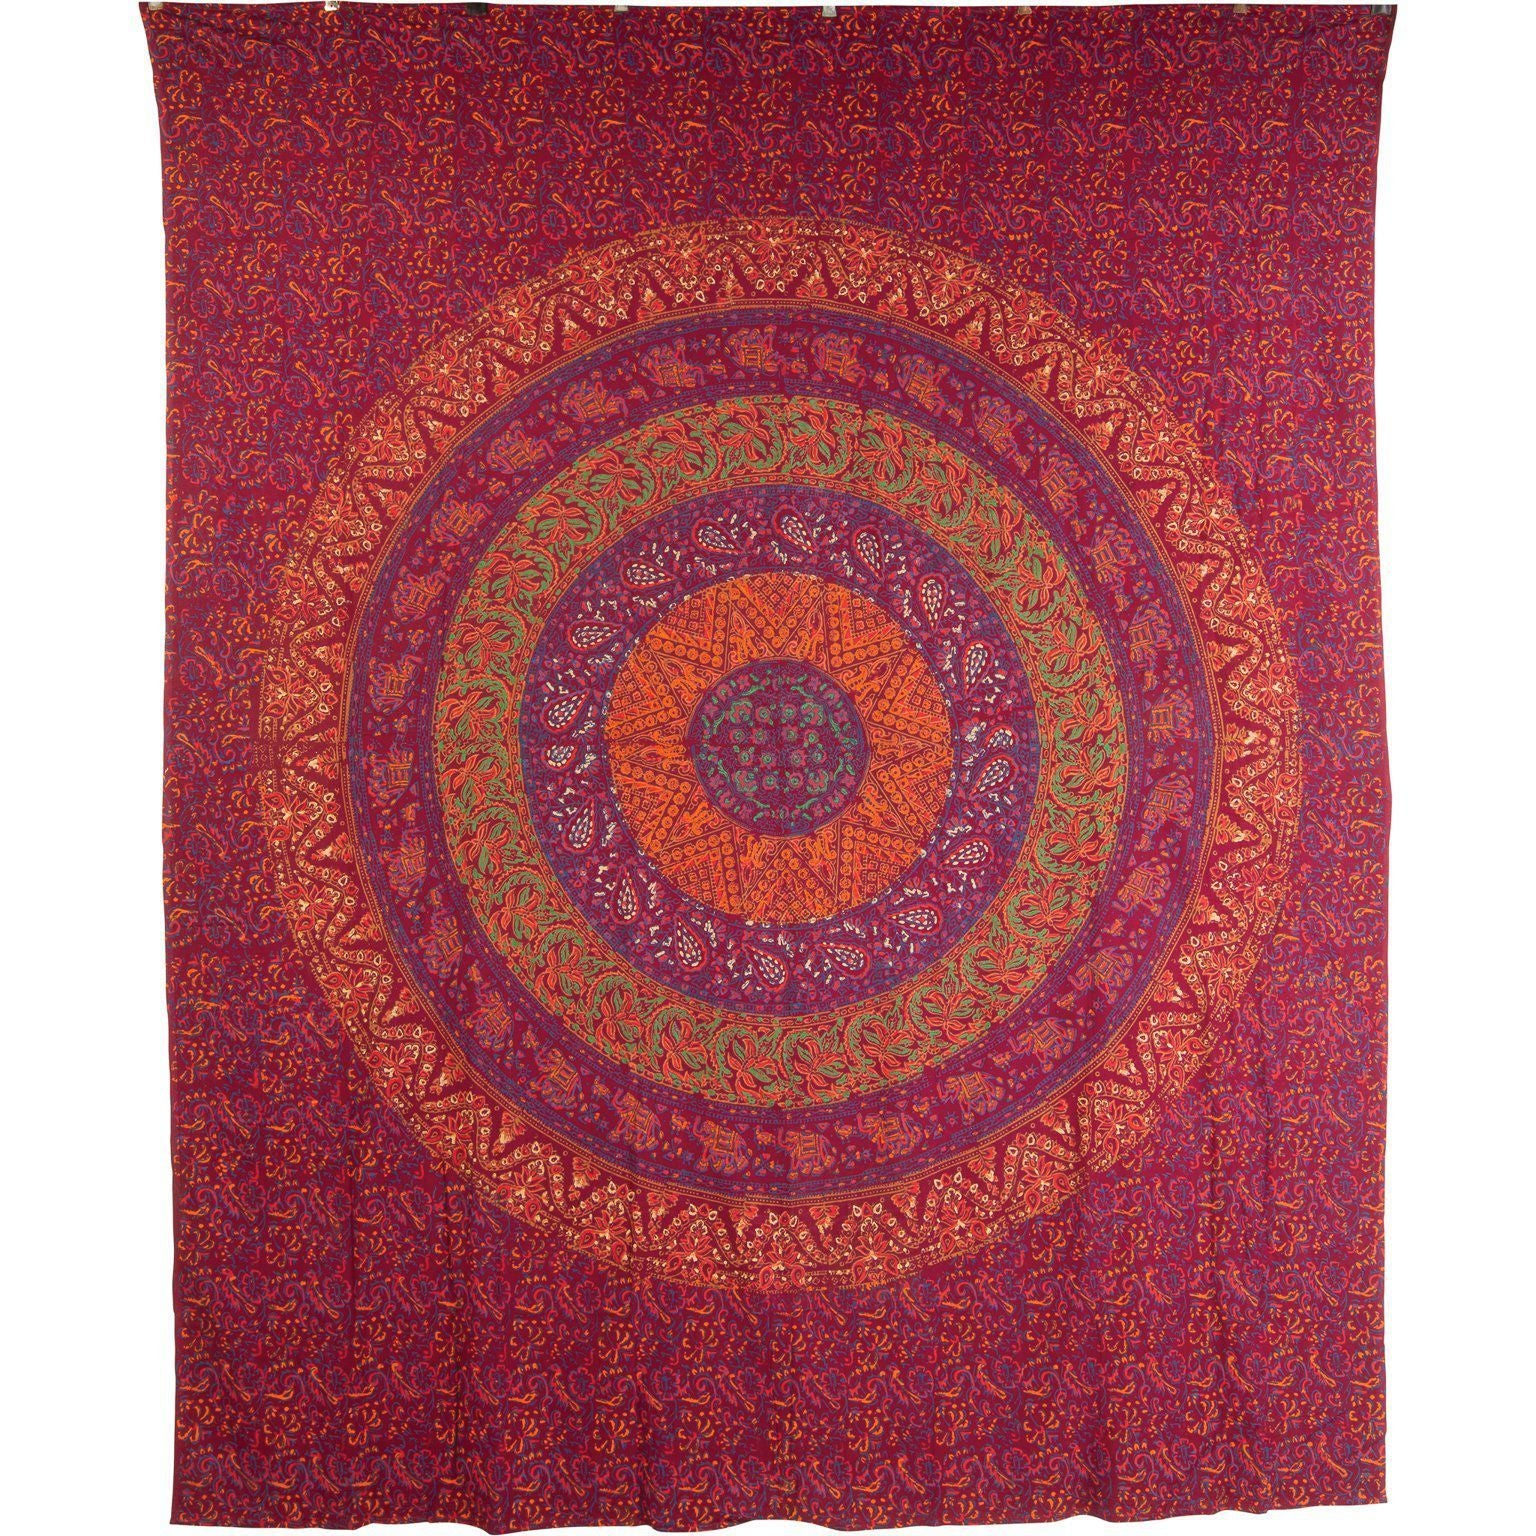 Ian Snow Ltd Maroon Sanganeri Circle Design Cotton Throw